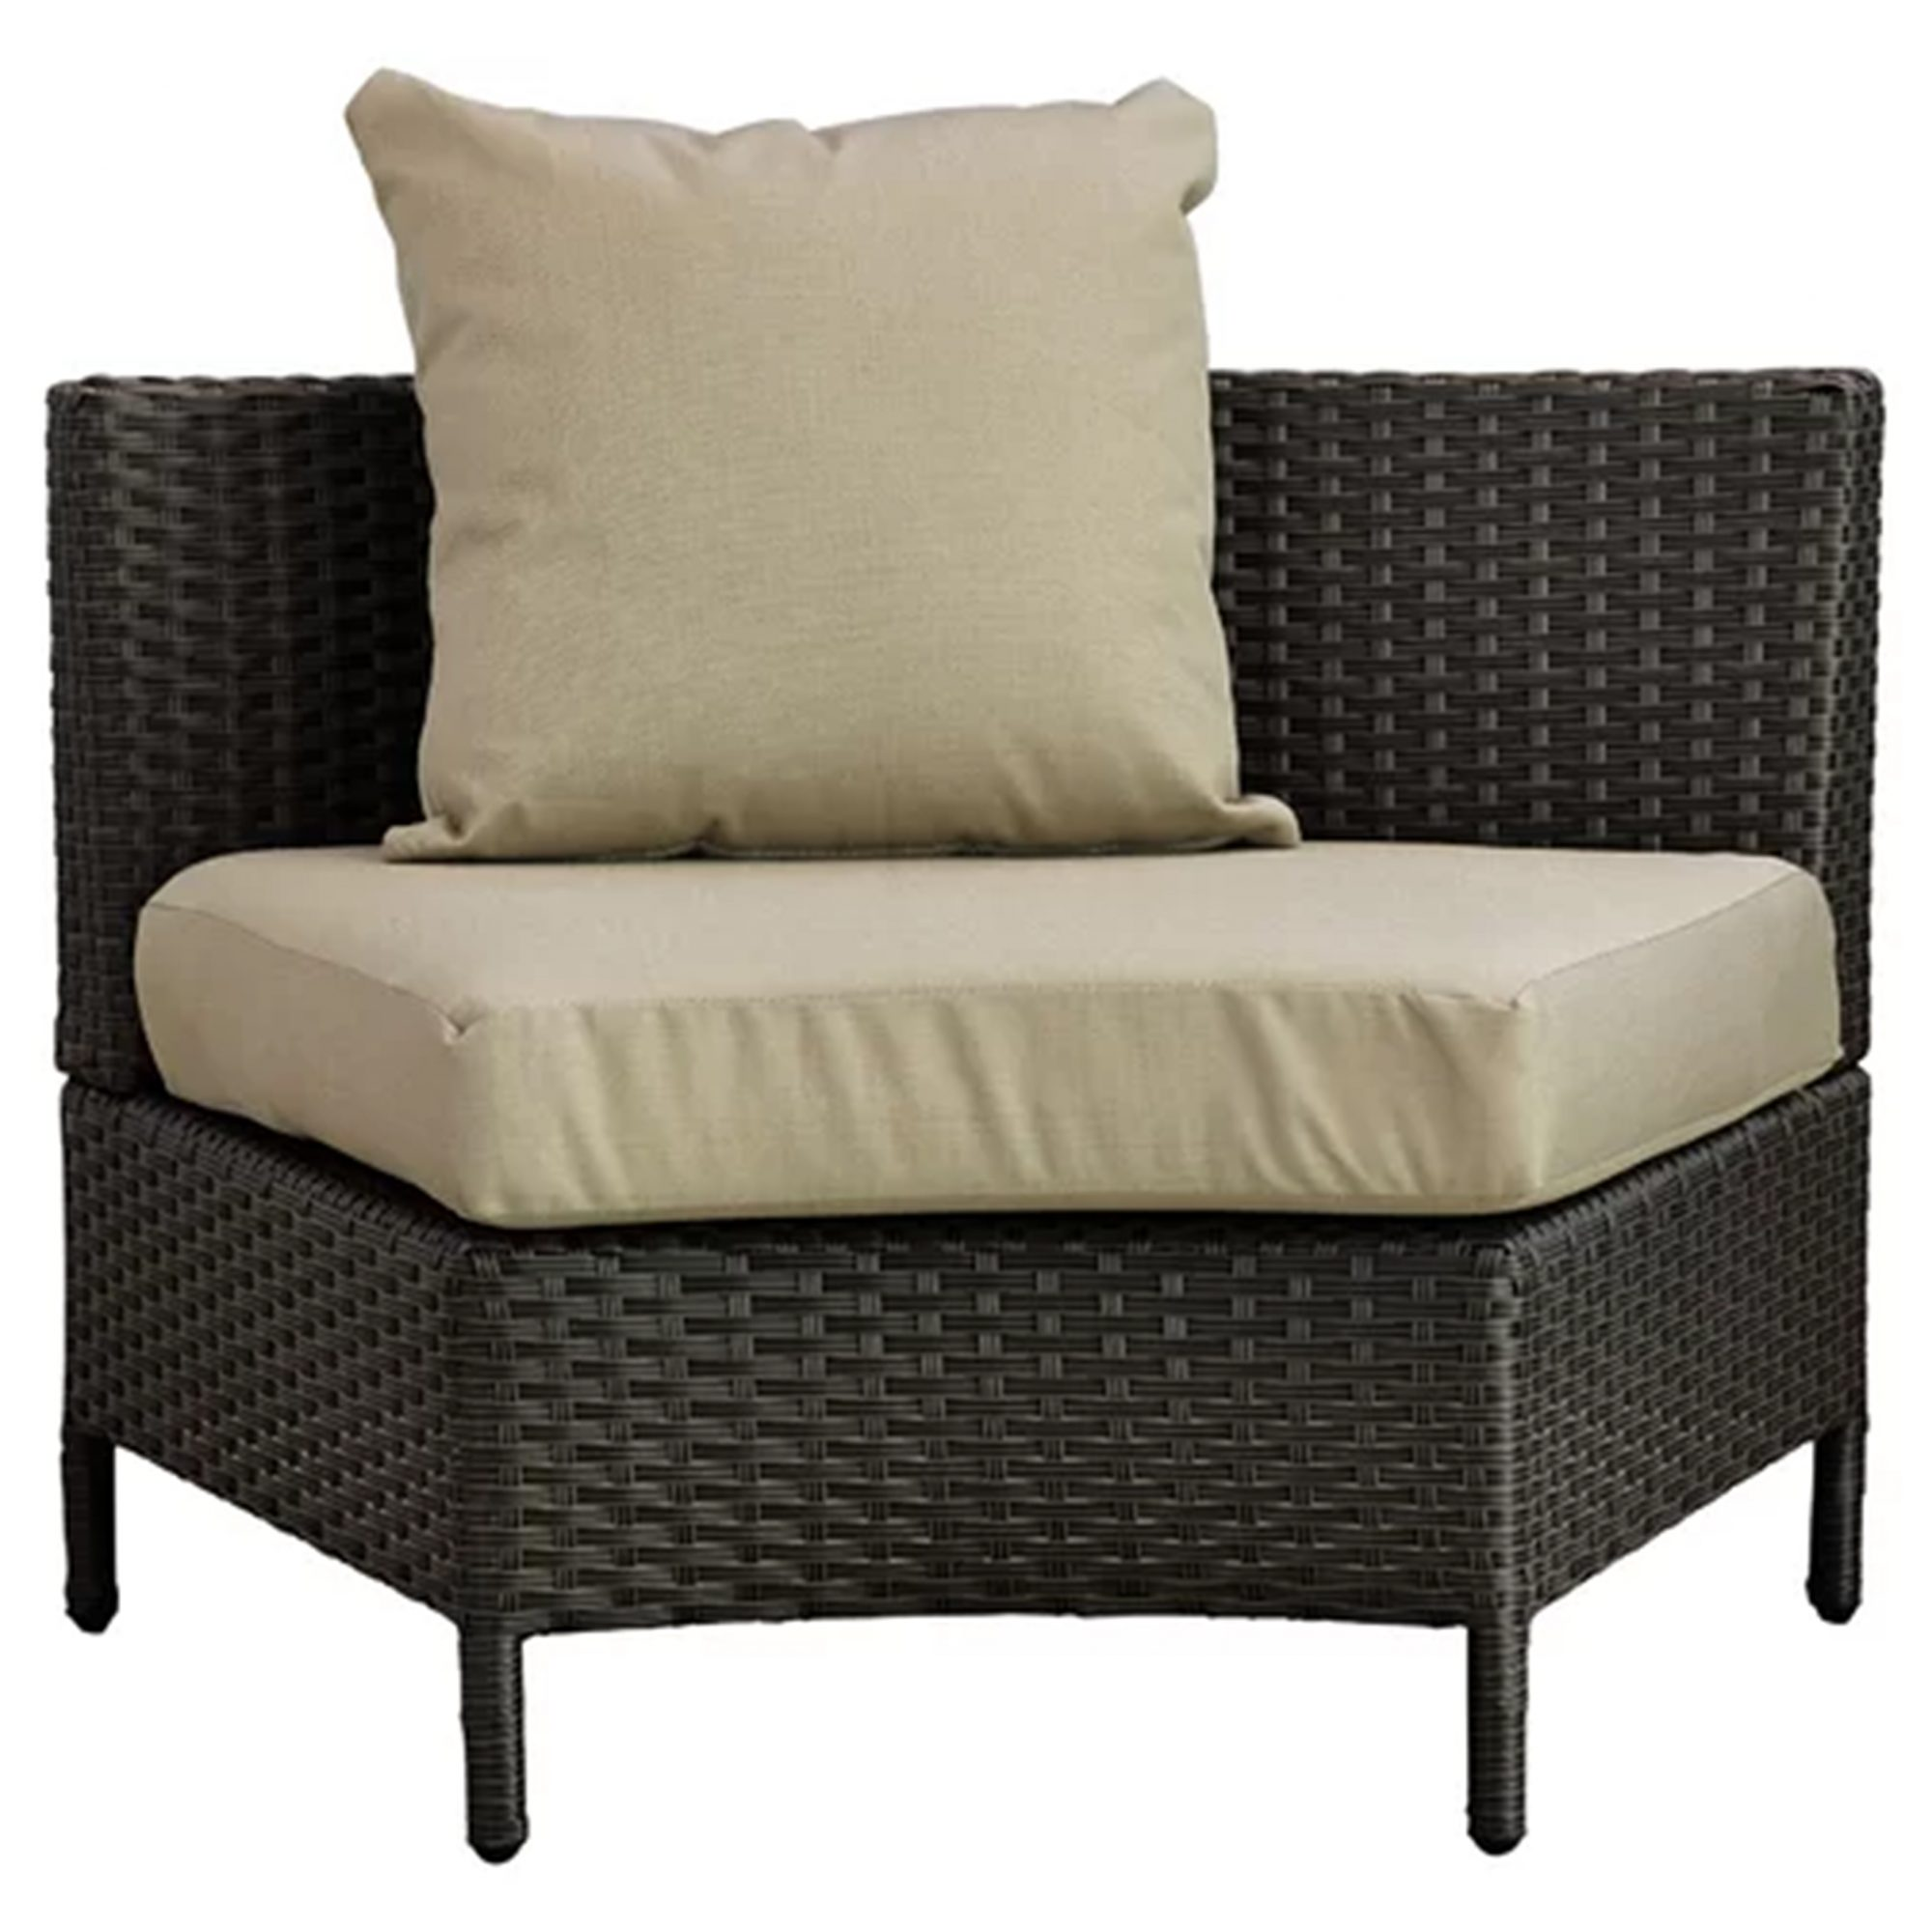 Mercury Ray Dowd 5 Piece Rattan Sectional Set with Cushions